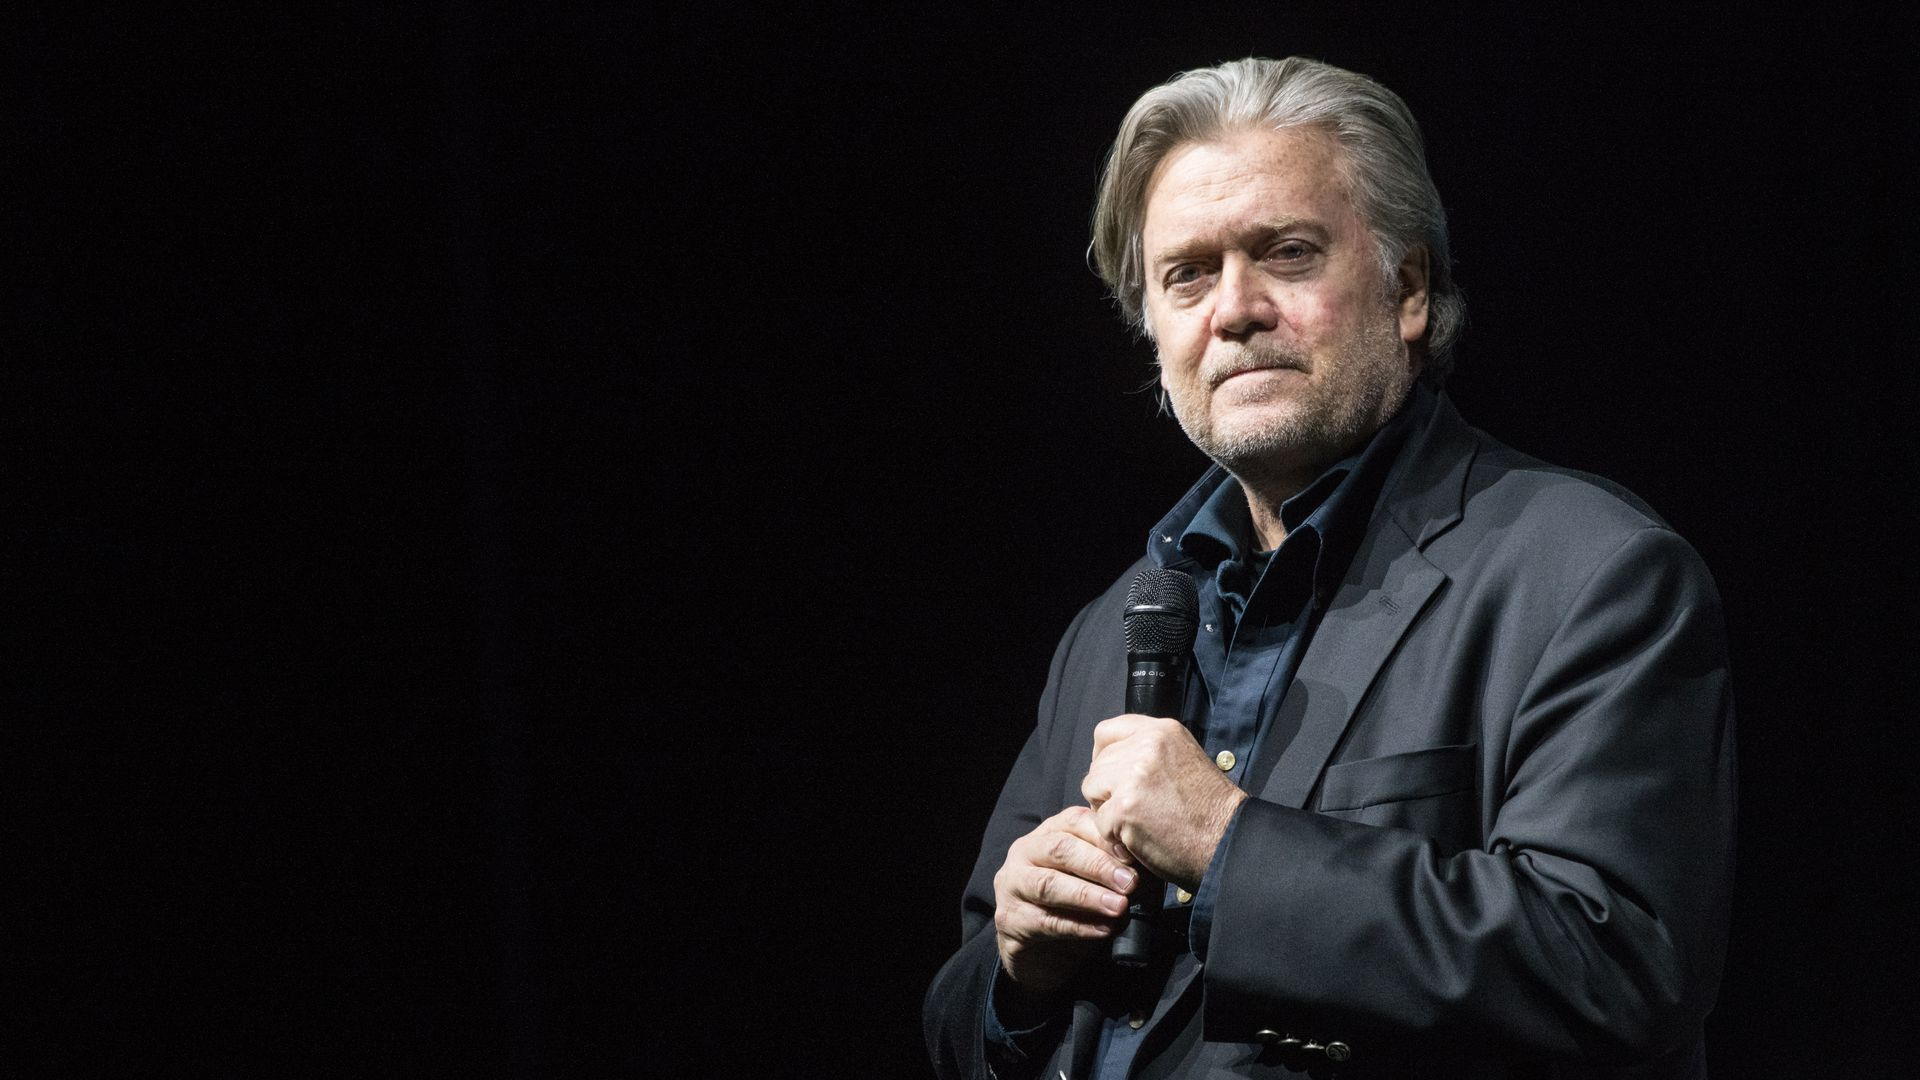 Steve Bannon pleads not guilty to fraud charges - Axios